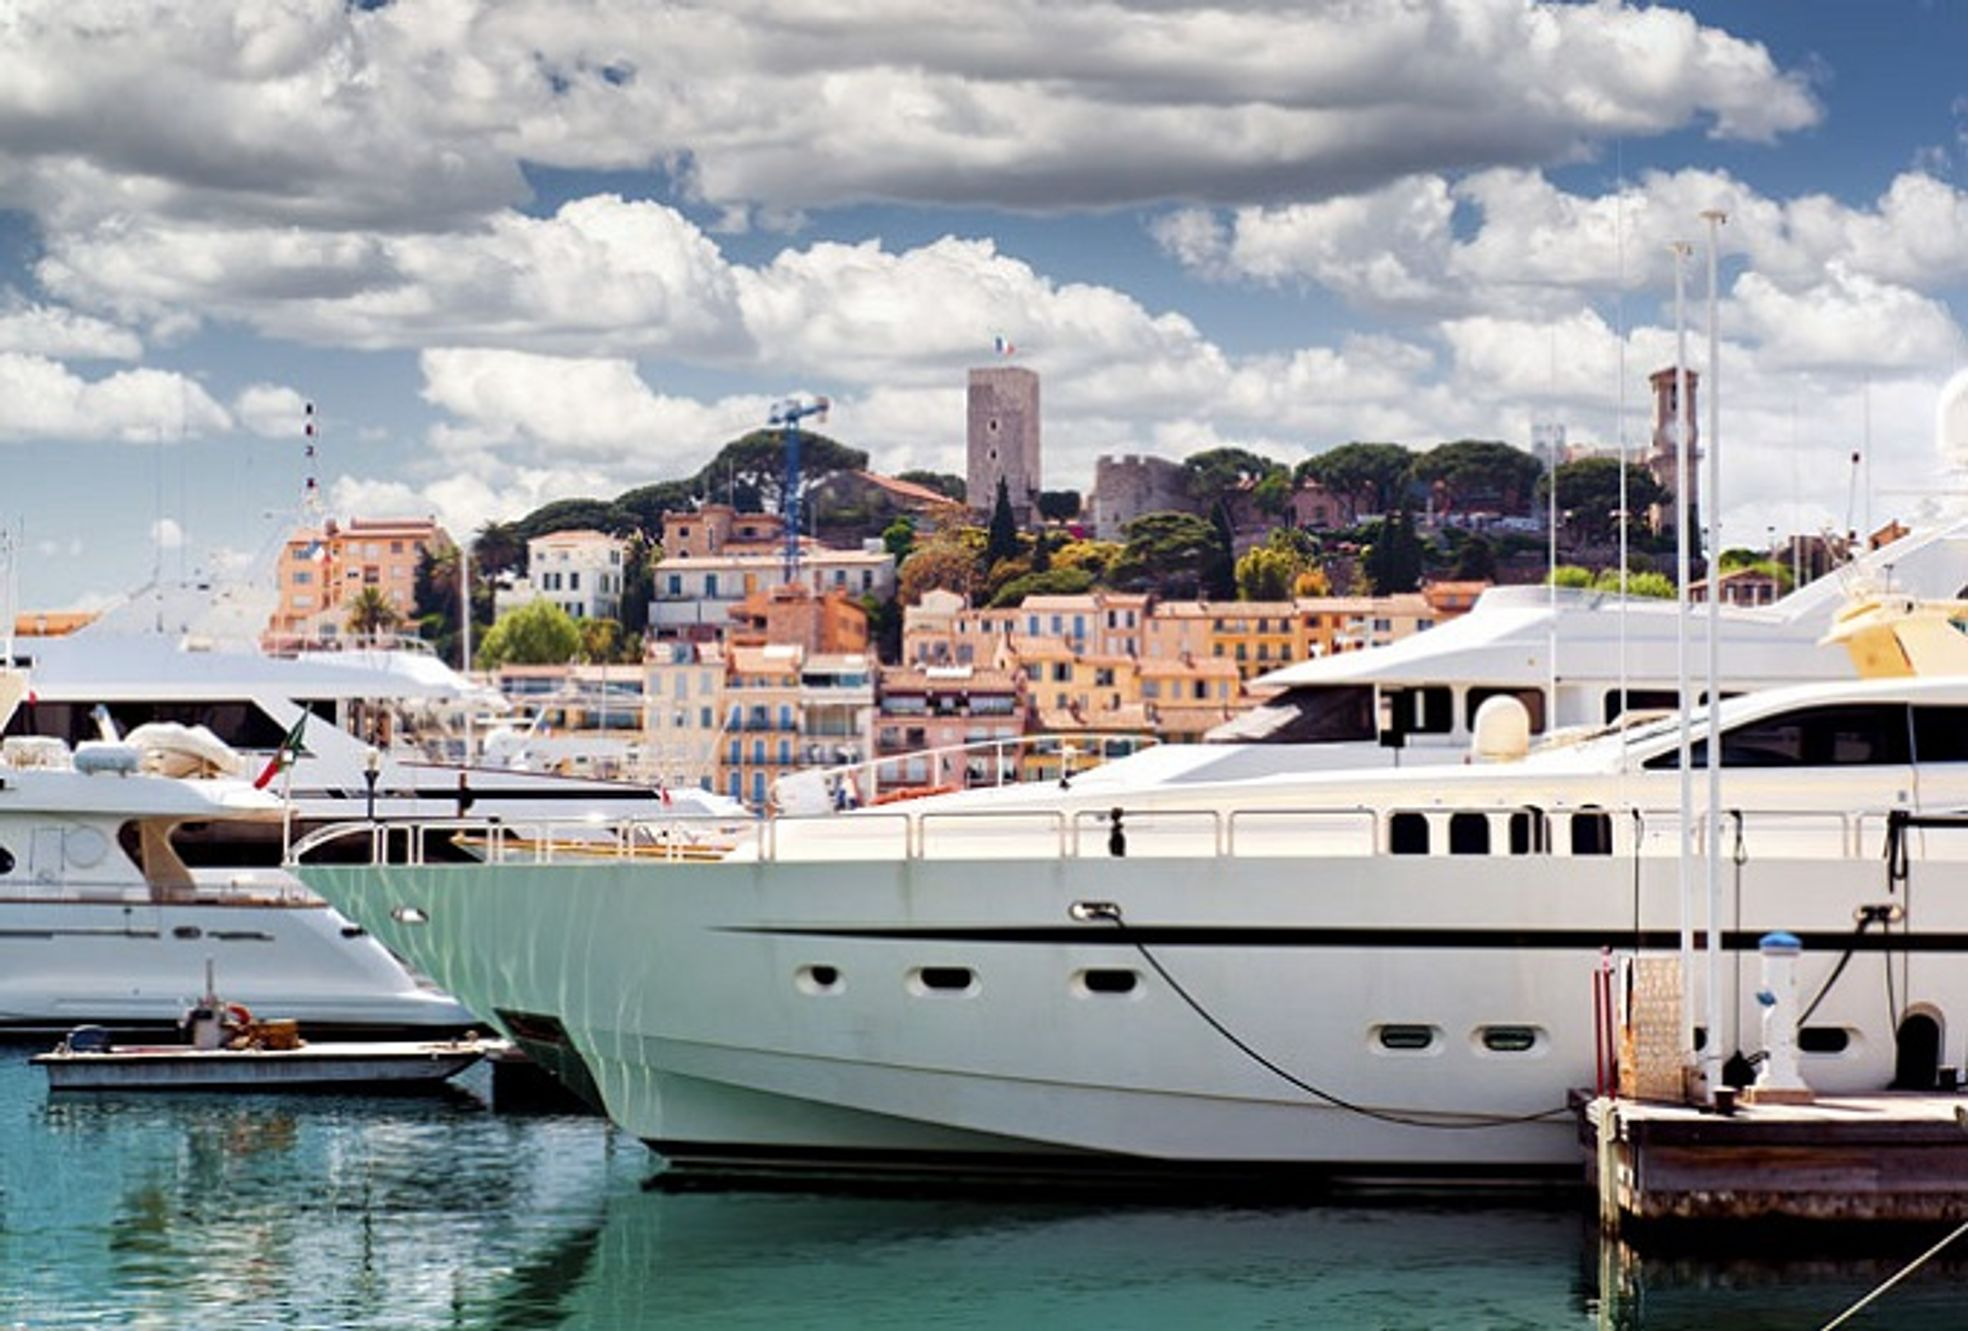 Cosa vedere a Cannes - Vieux Port